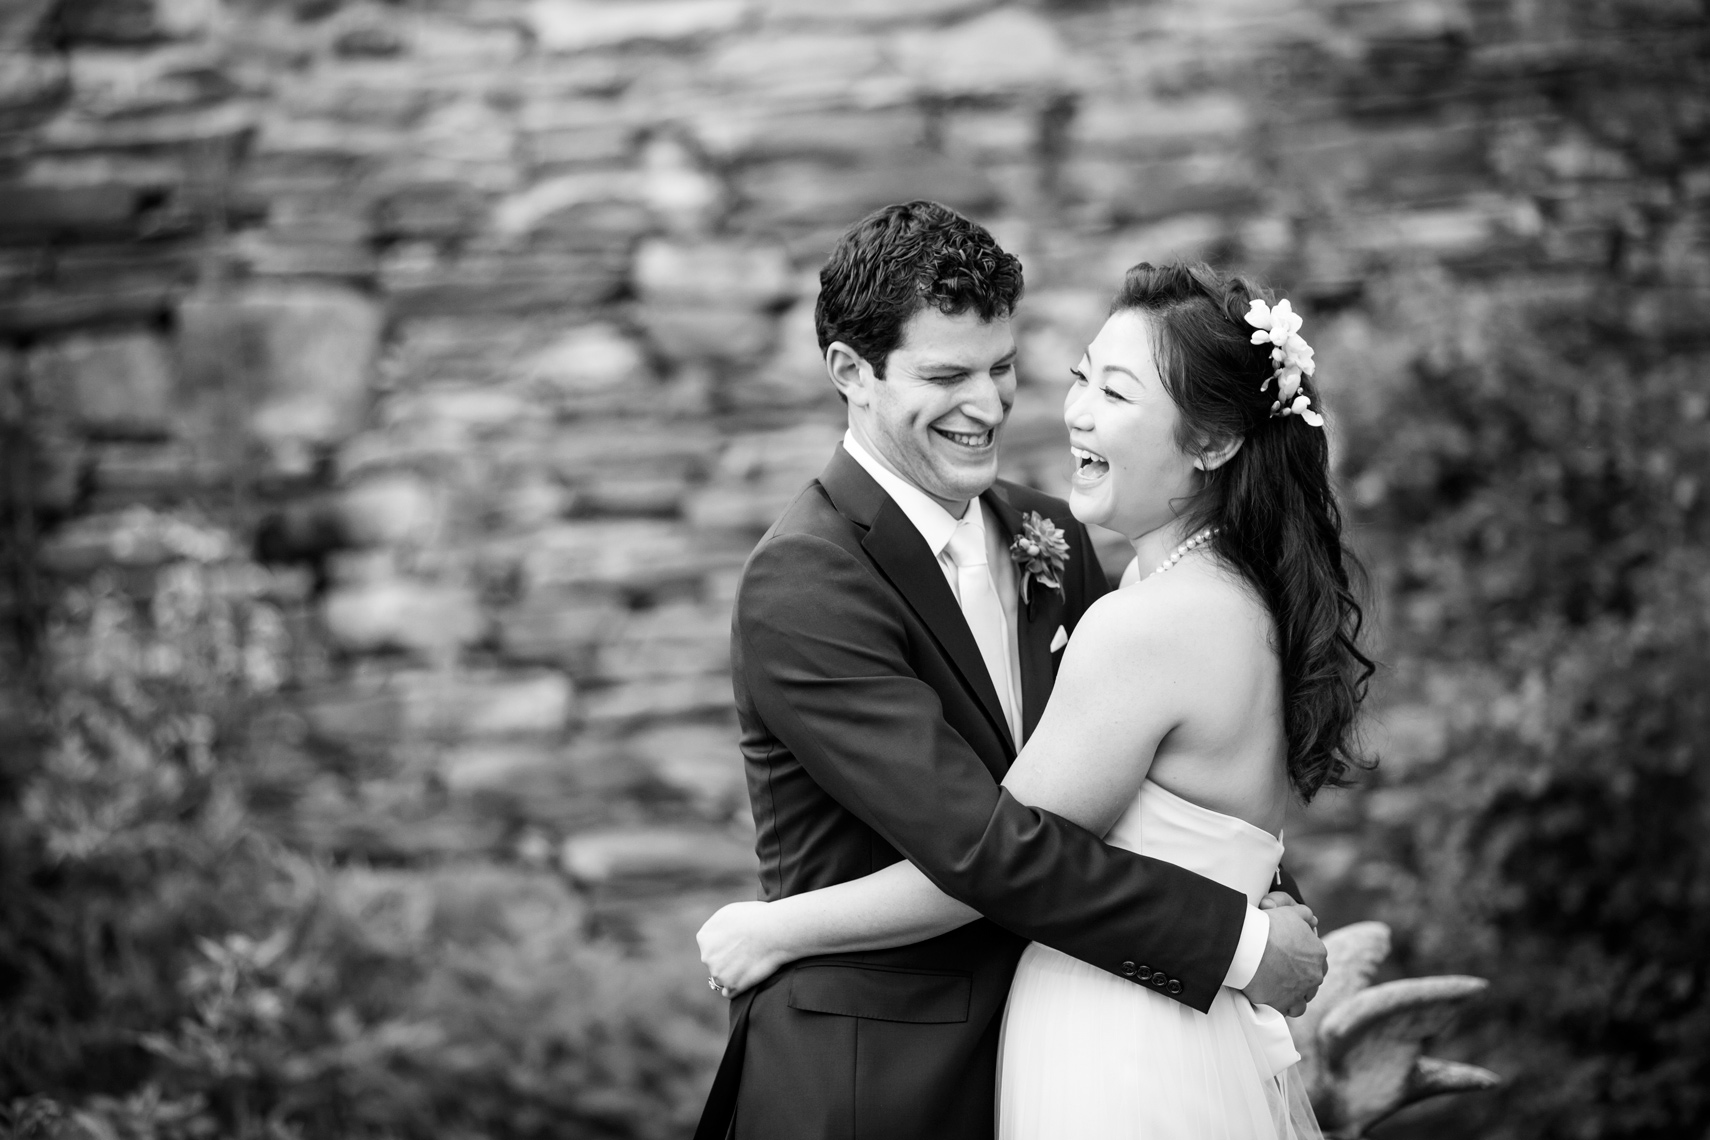 ny-wedding-photographers-sarma-and-co-171_1